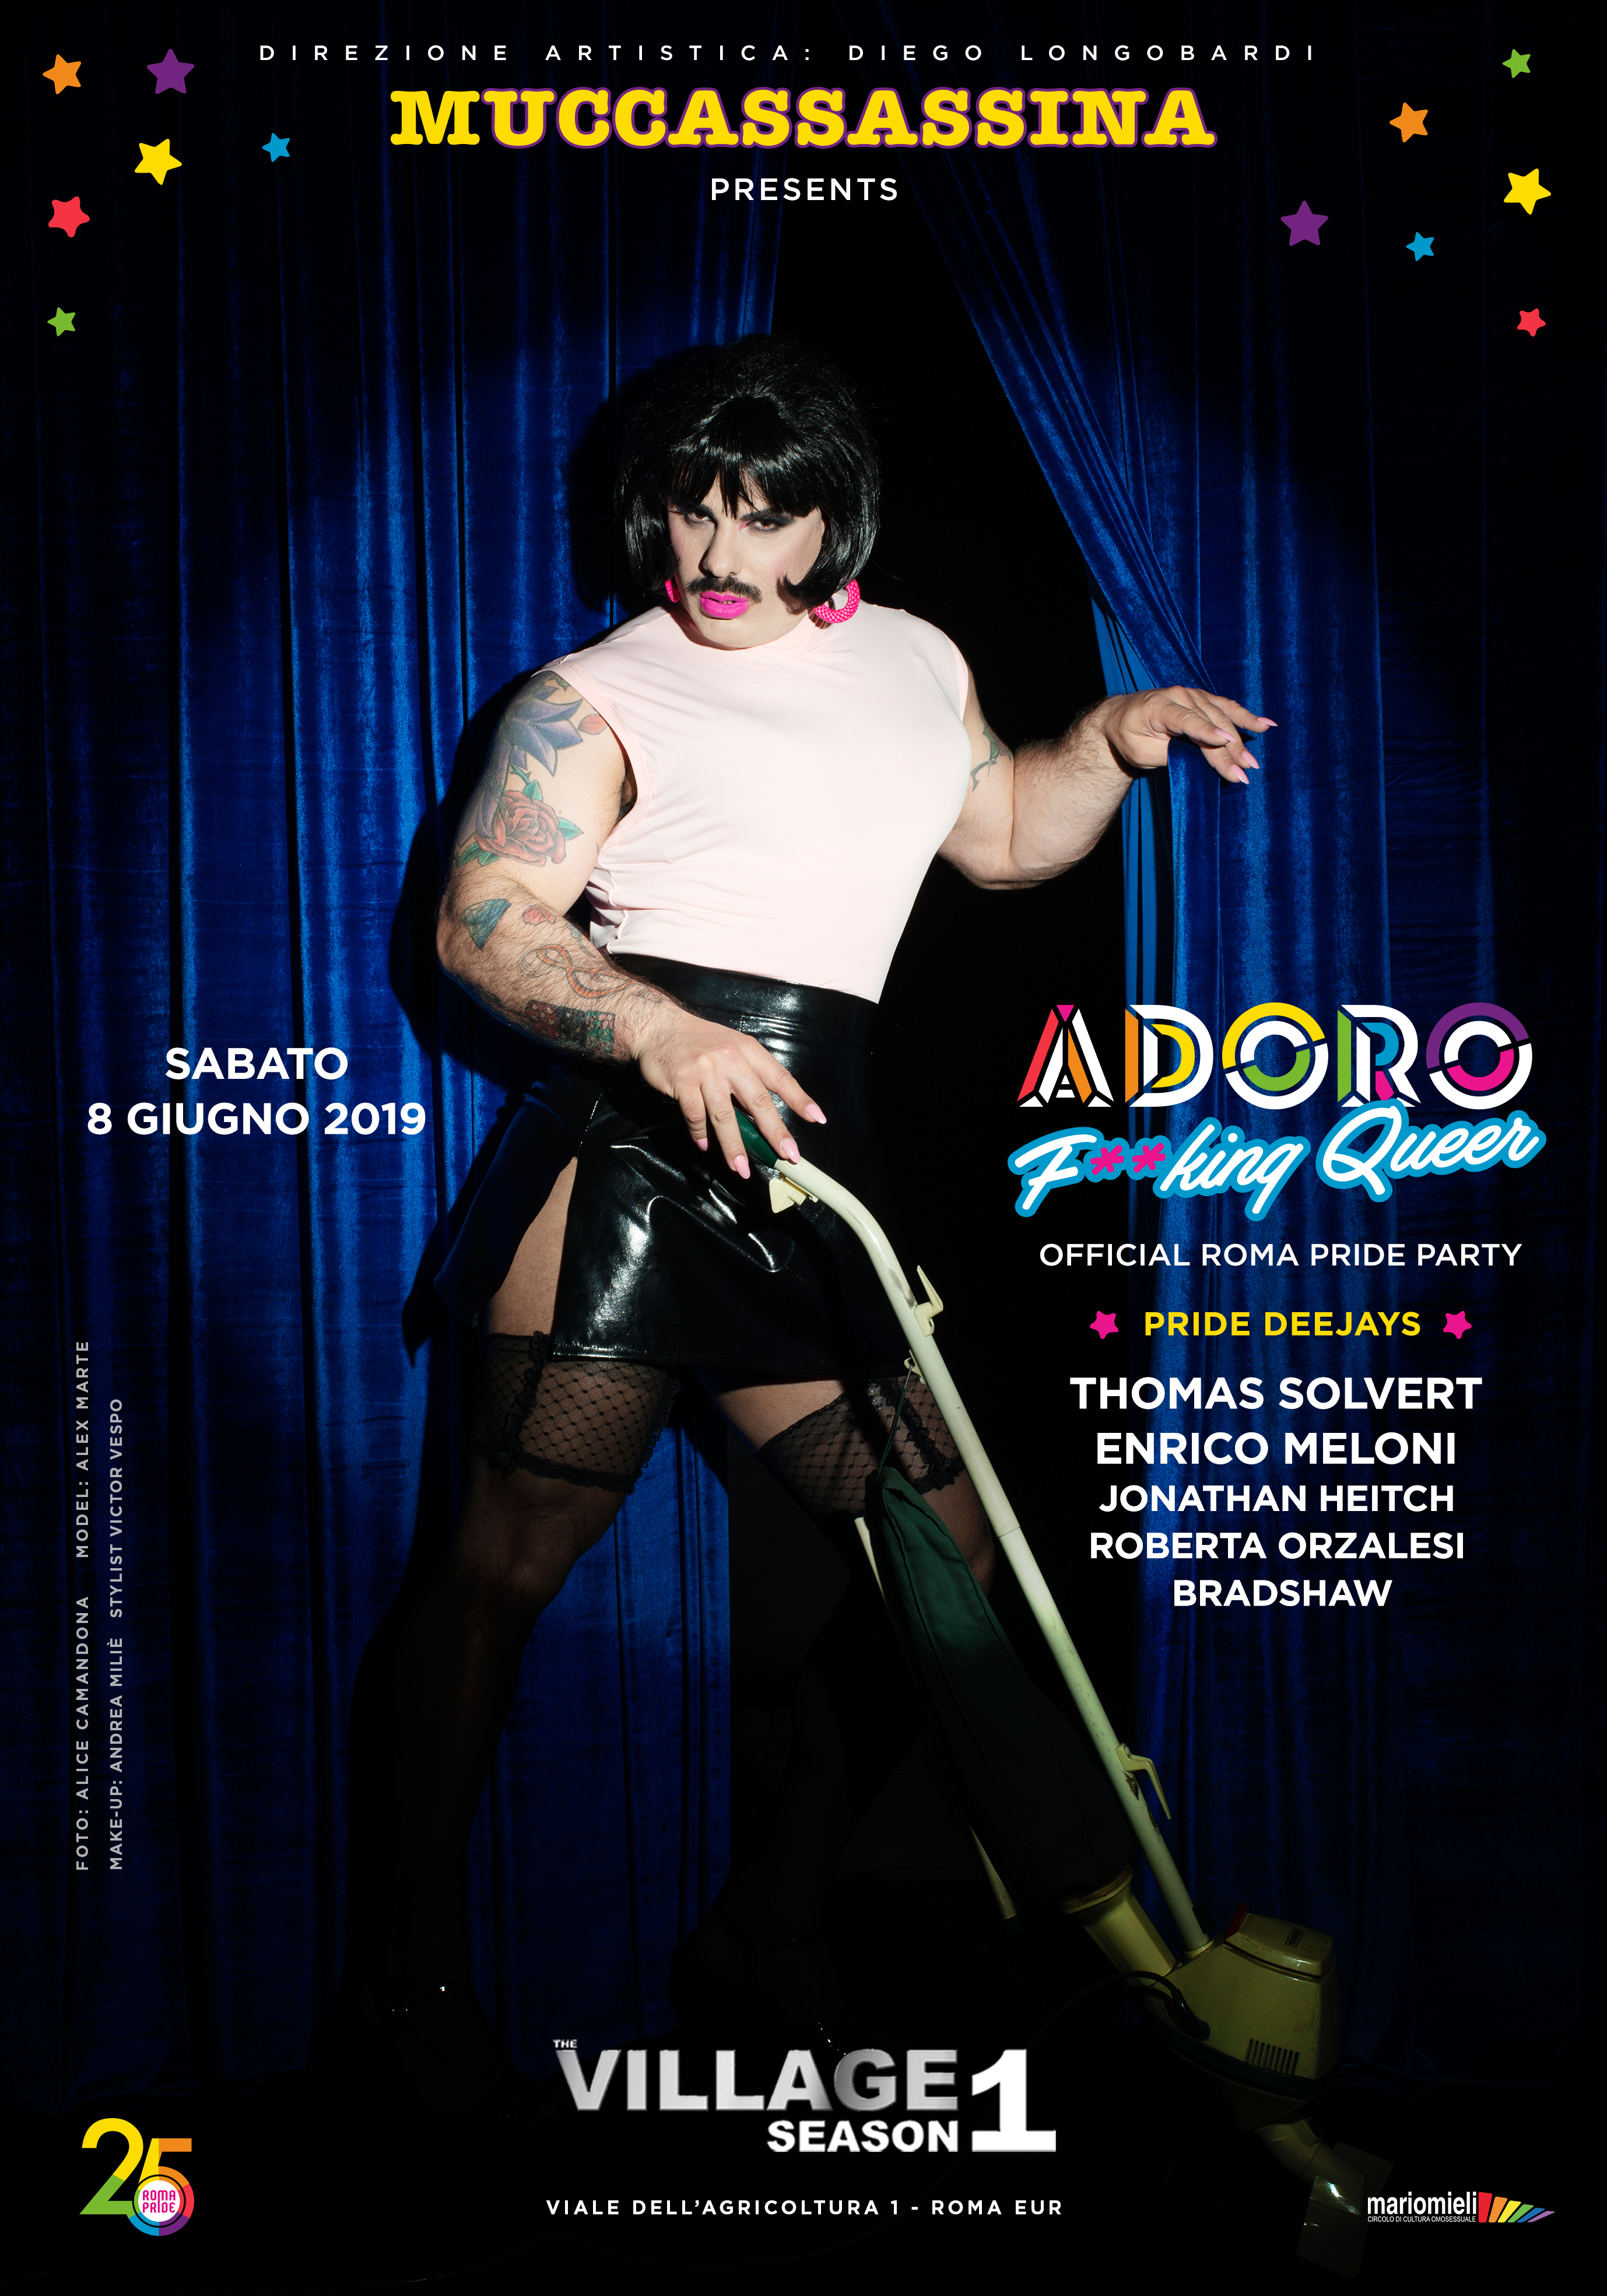 Adoro F**king Queer Edition - Roma Pride Official Party